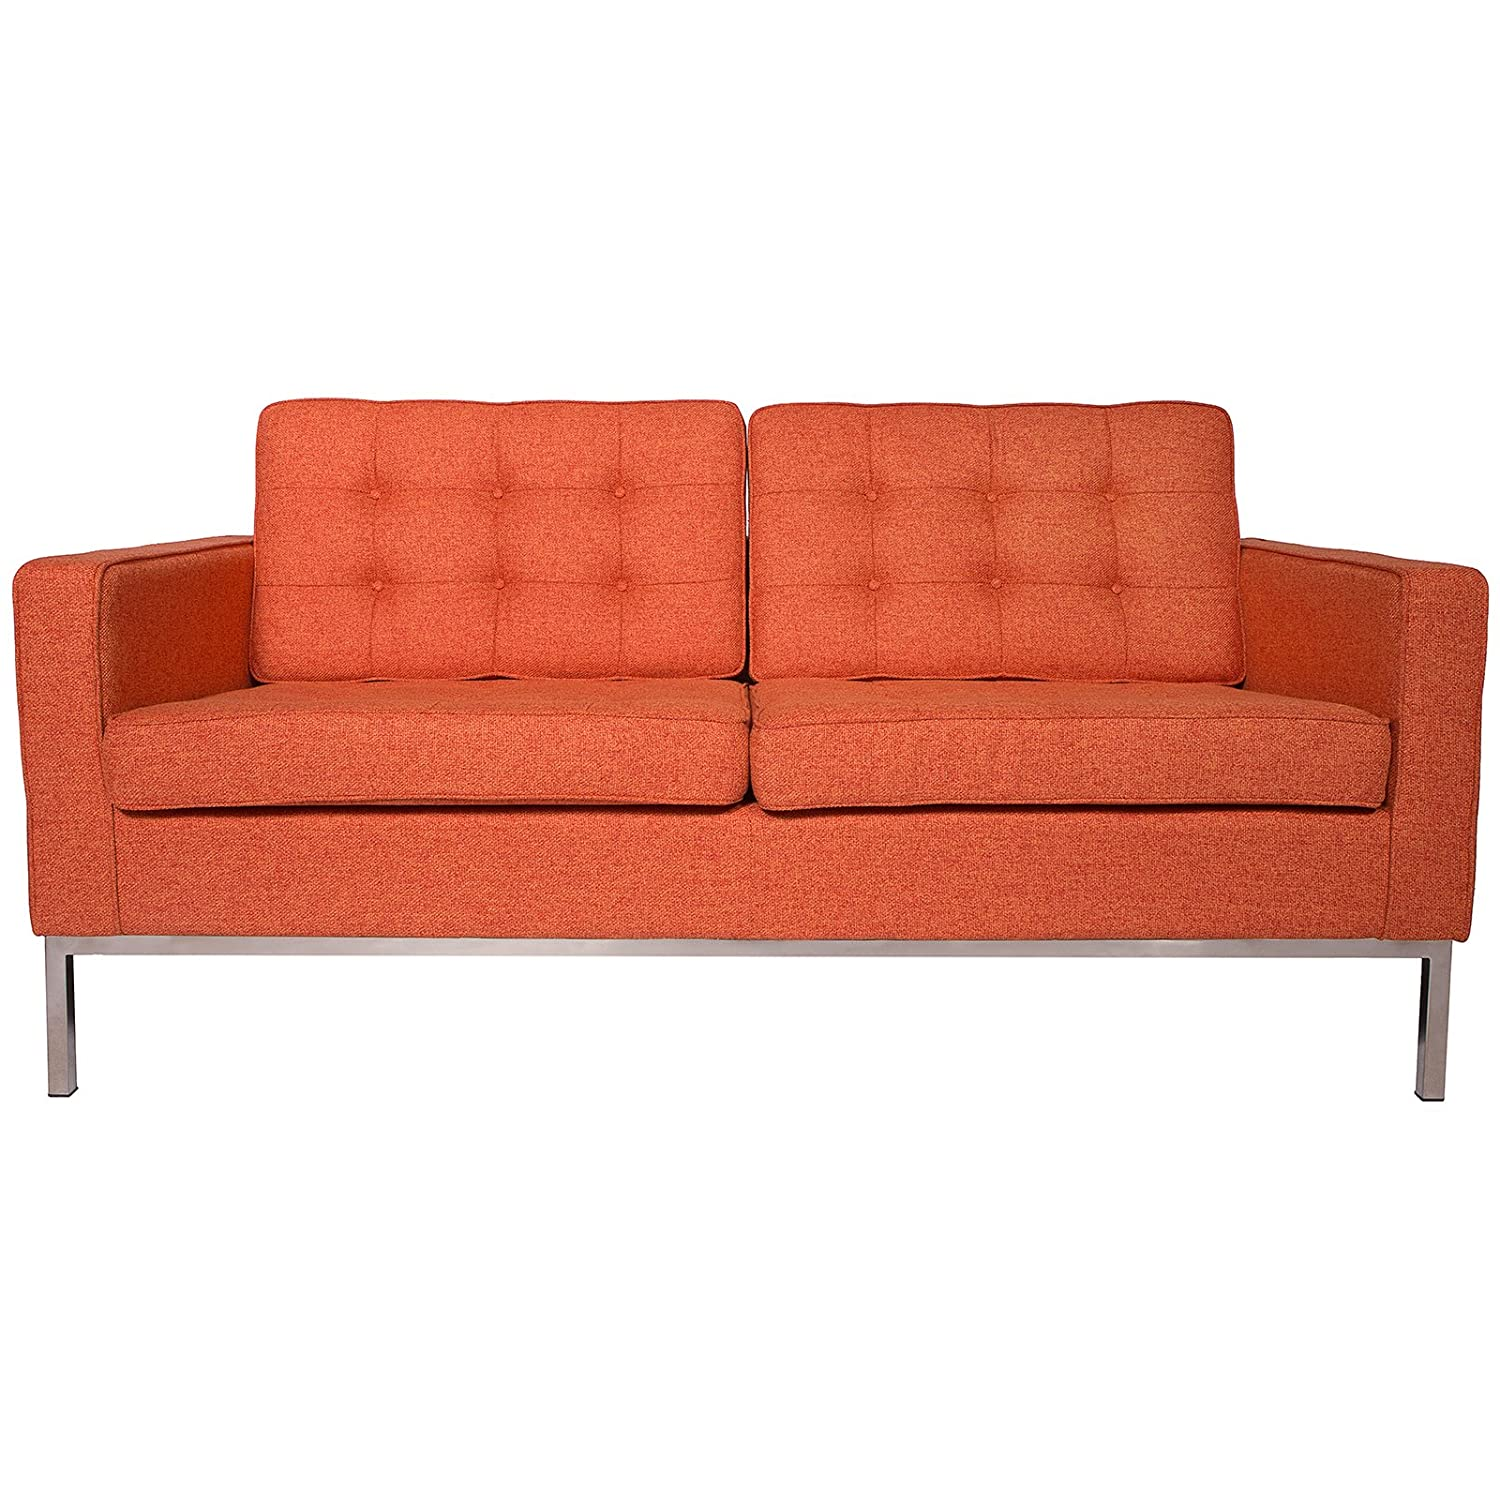 LeisureMod® Modern Florence Style Fabric Loveseat Sofa in Orange Twill Wool